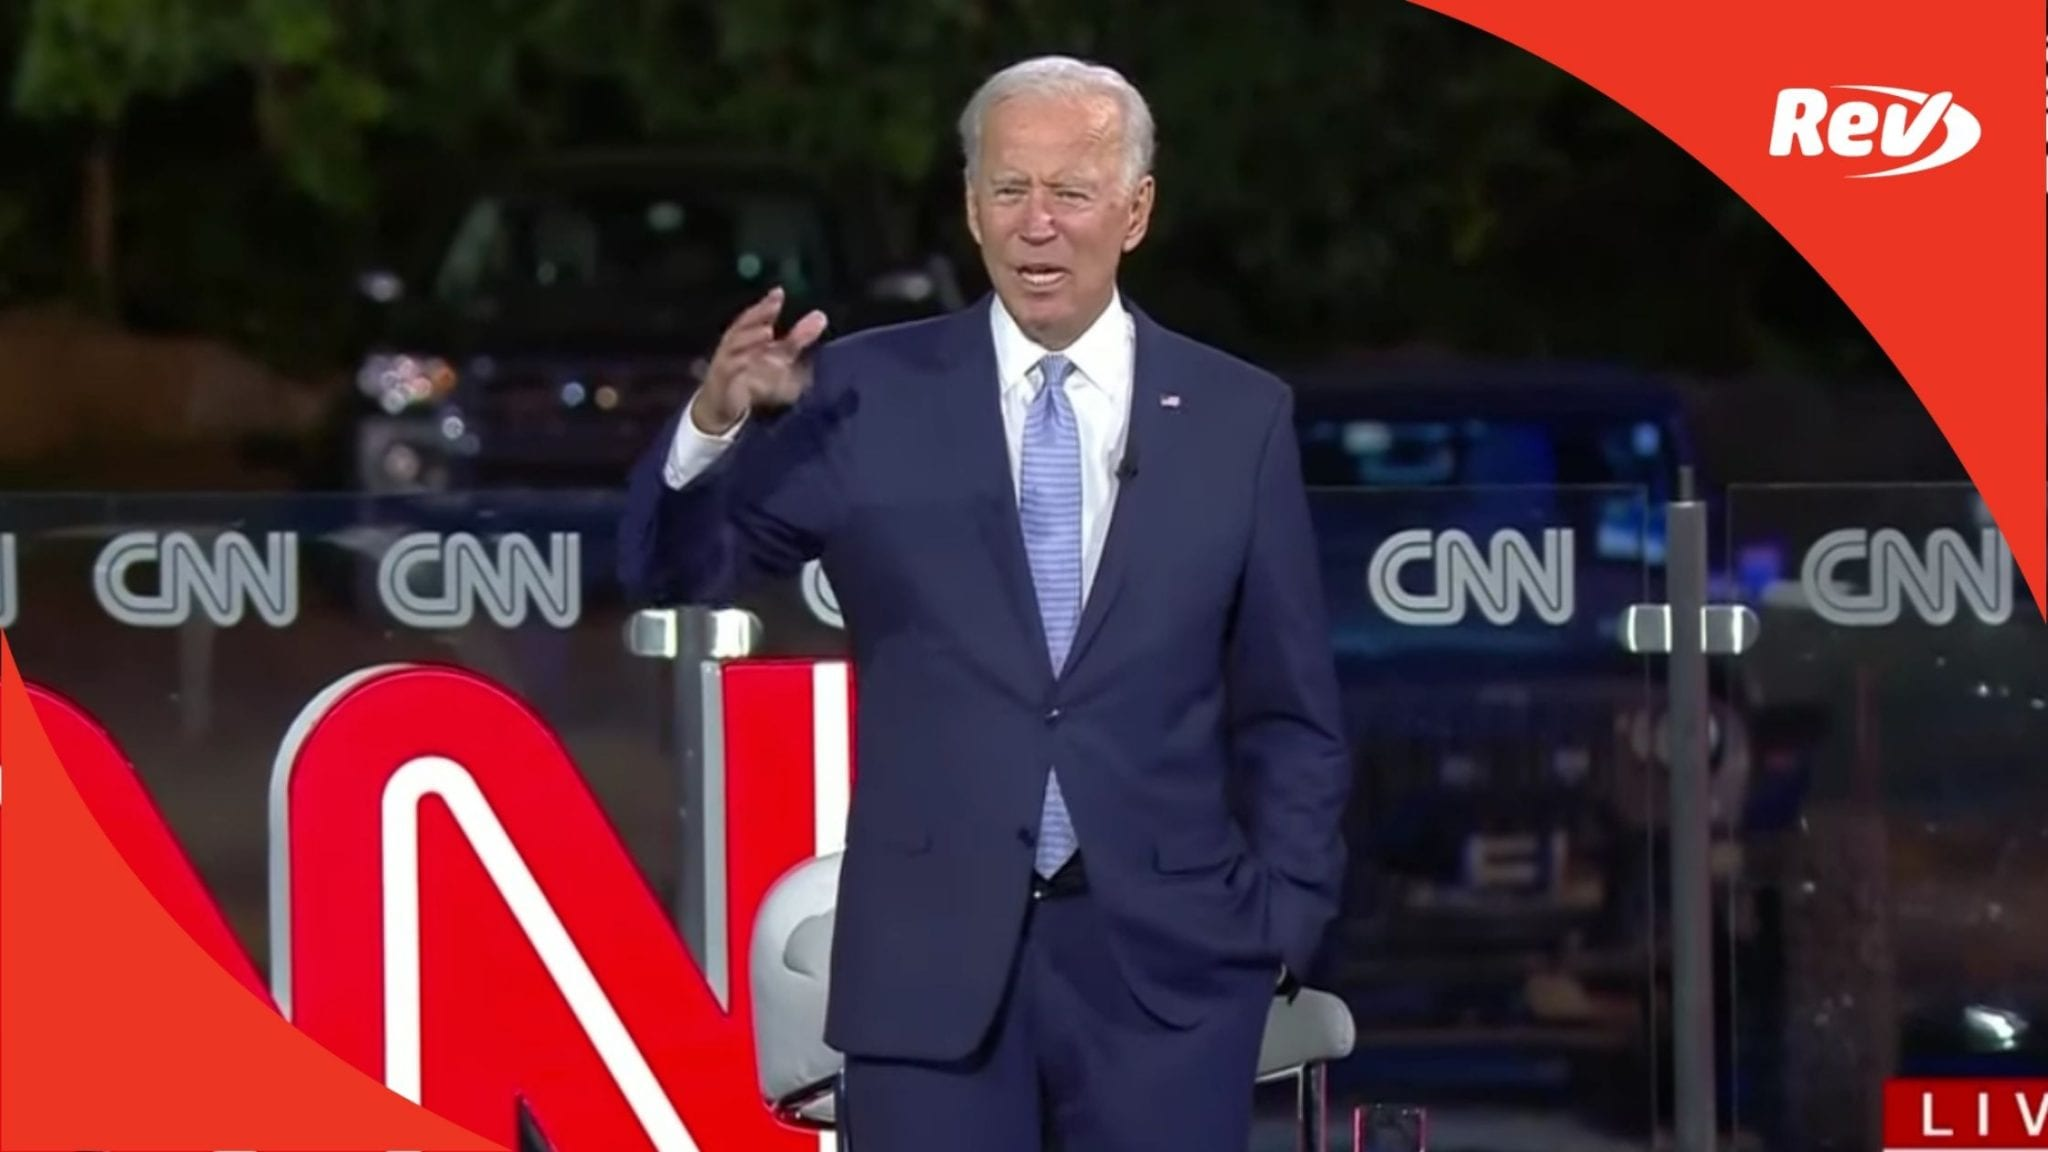 Joe Biden Cnn Town Hall Fracking Has To Continue Transcript September 17 Rev